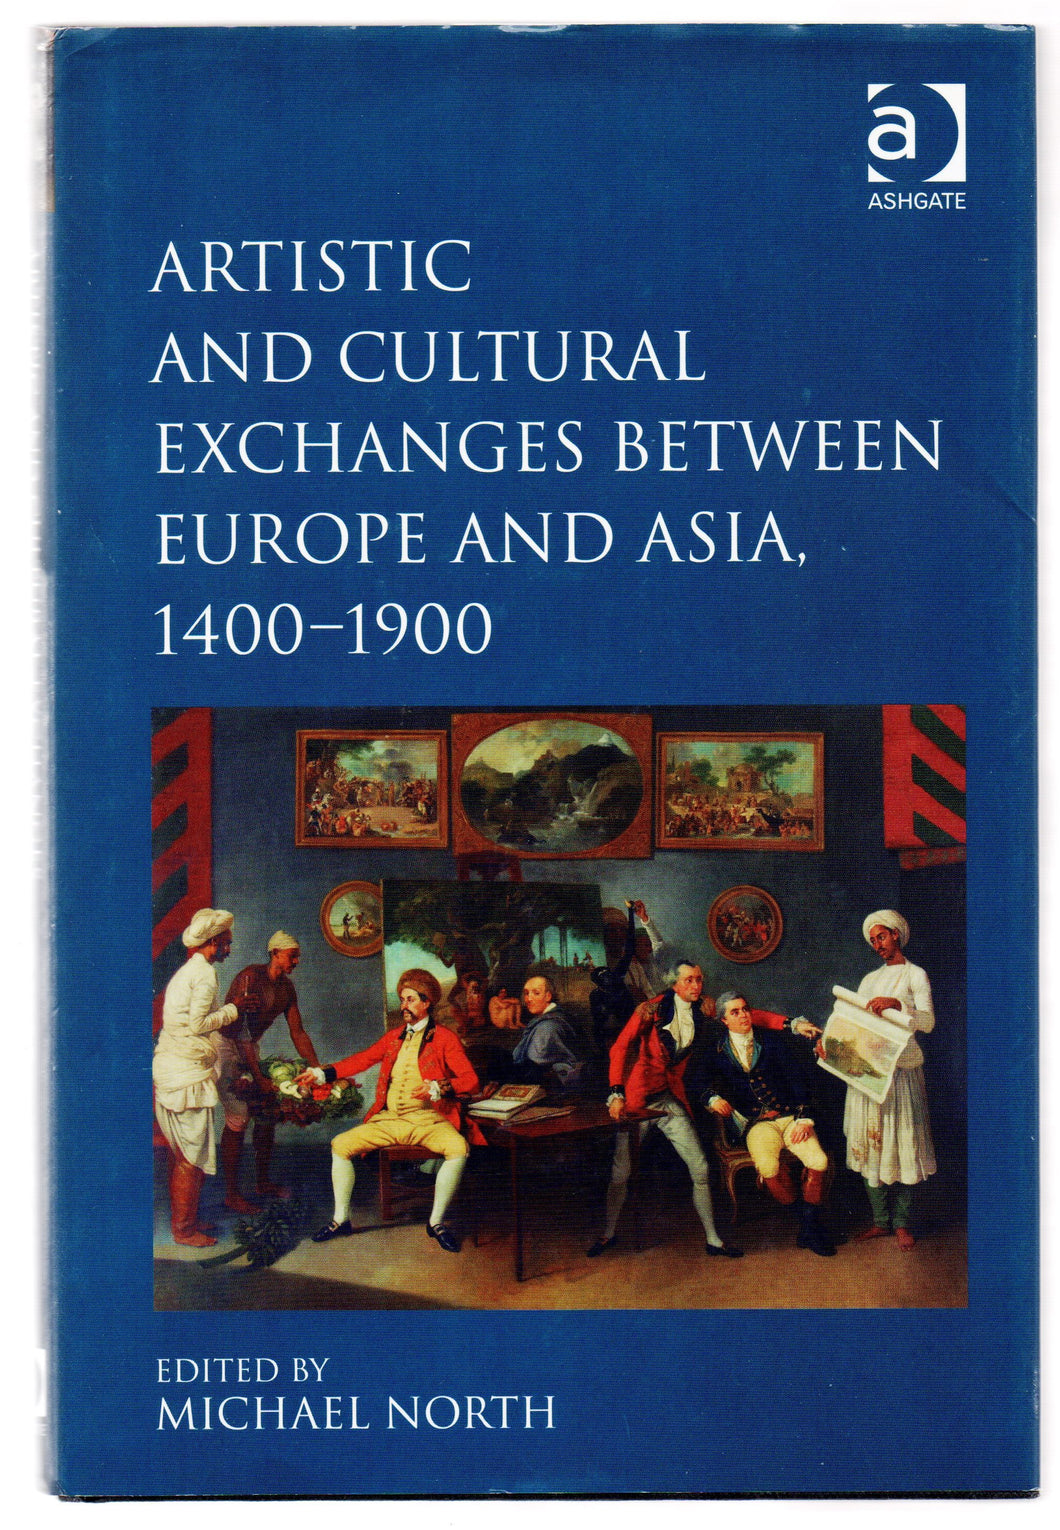 Artistic and Cultural Exchanges Between Europe and Asia, 1400-1900: Rethinking Markets, Workshops and Collections